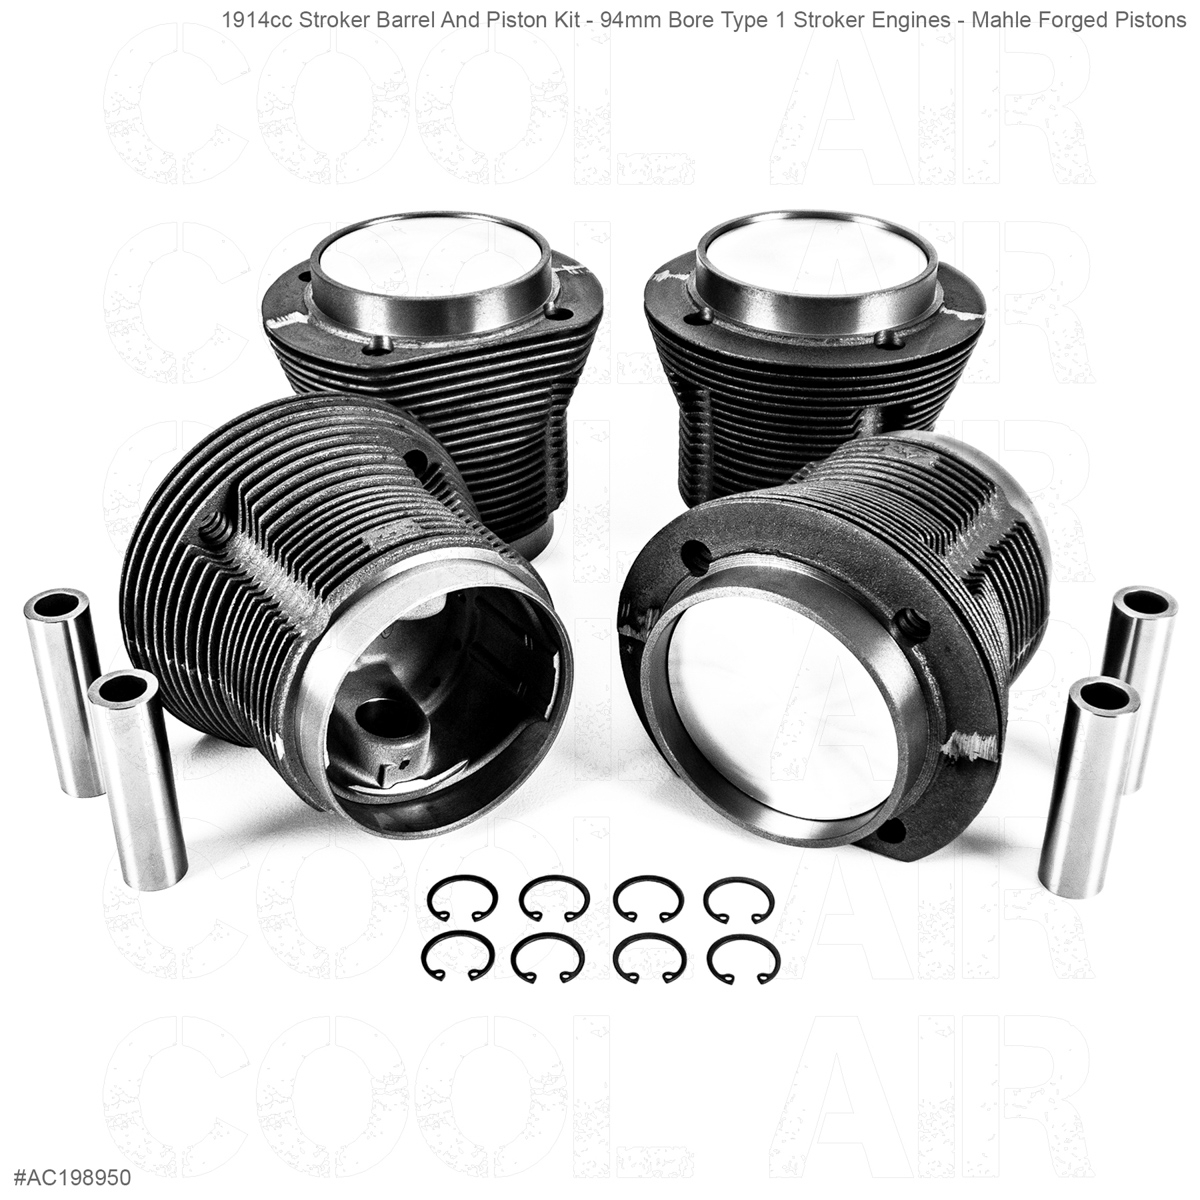 1914cc Stroker Barrel And Piston Kit - 94mm Bore Type 1 Stroker Engines - Mahle Forged Pistons